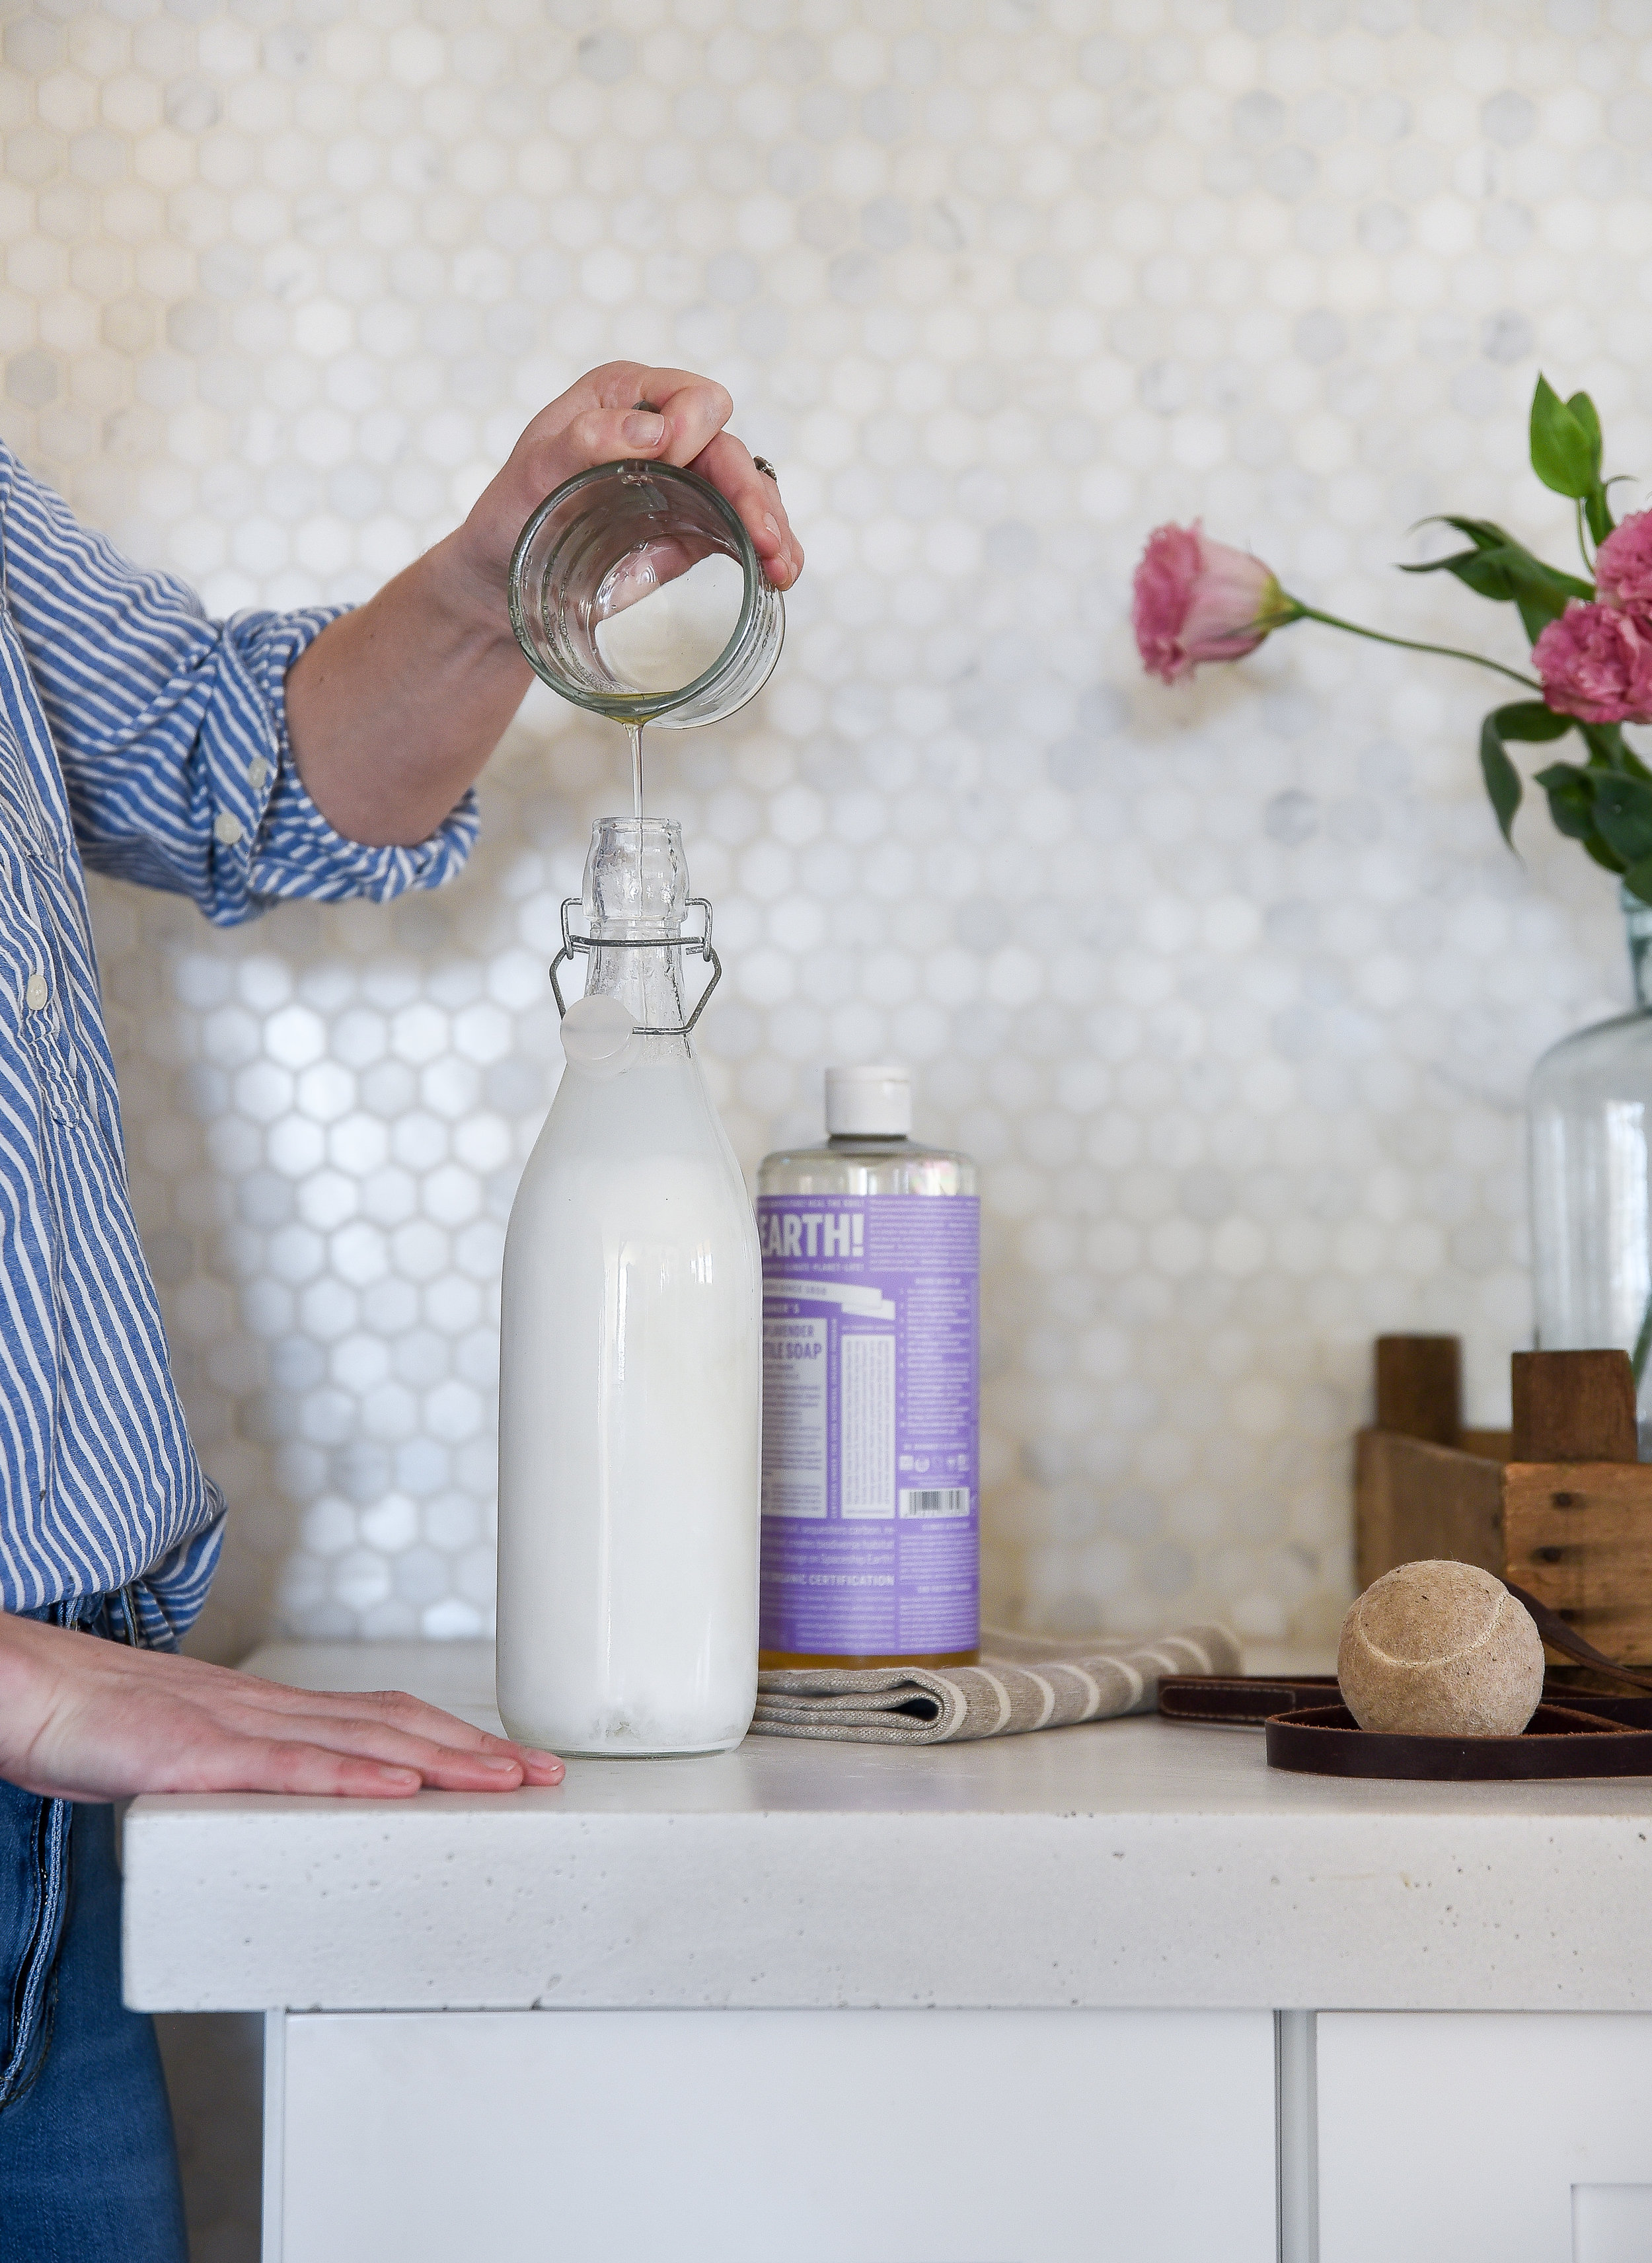 Top uses for Castile Soap - homemade dog shampoo! This easy homemade doggy shampoo is calming and effective! Organic, plant-based, and non-toxic! #petshampoo #dogshampoo #castilesoap boxwoodavenue.com